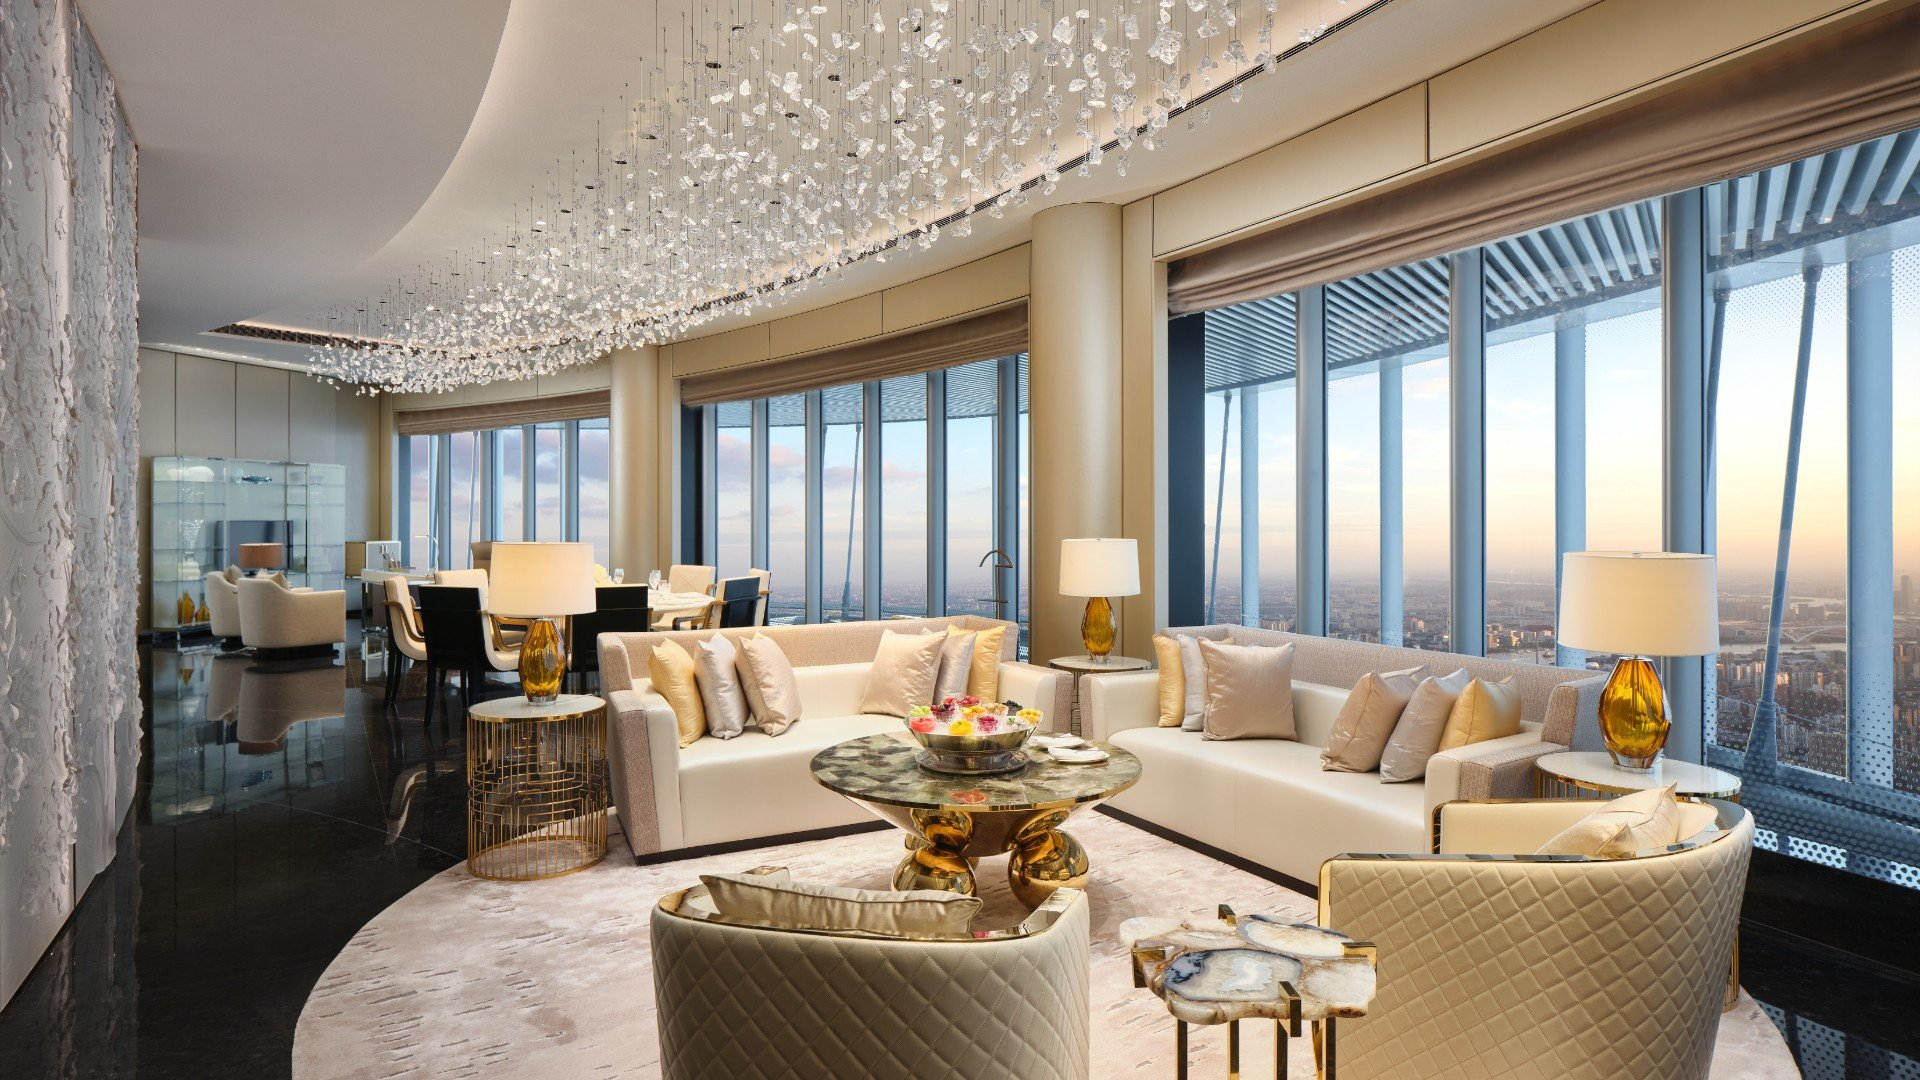 The Shanghai Suite living room at J Hotel has panoramic views of Shanghai and decorated in elegant furniture.